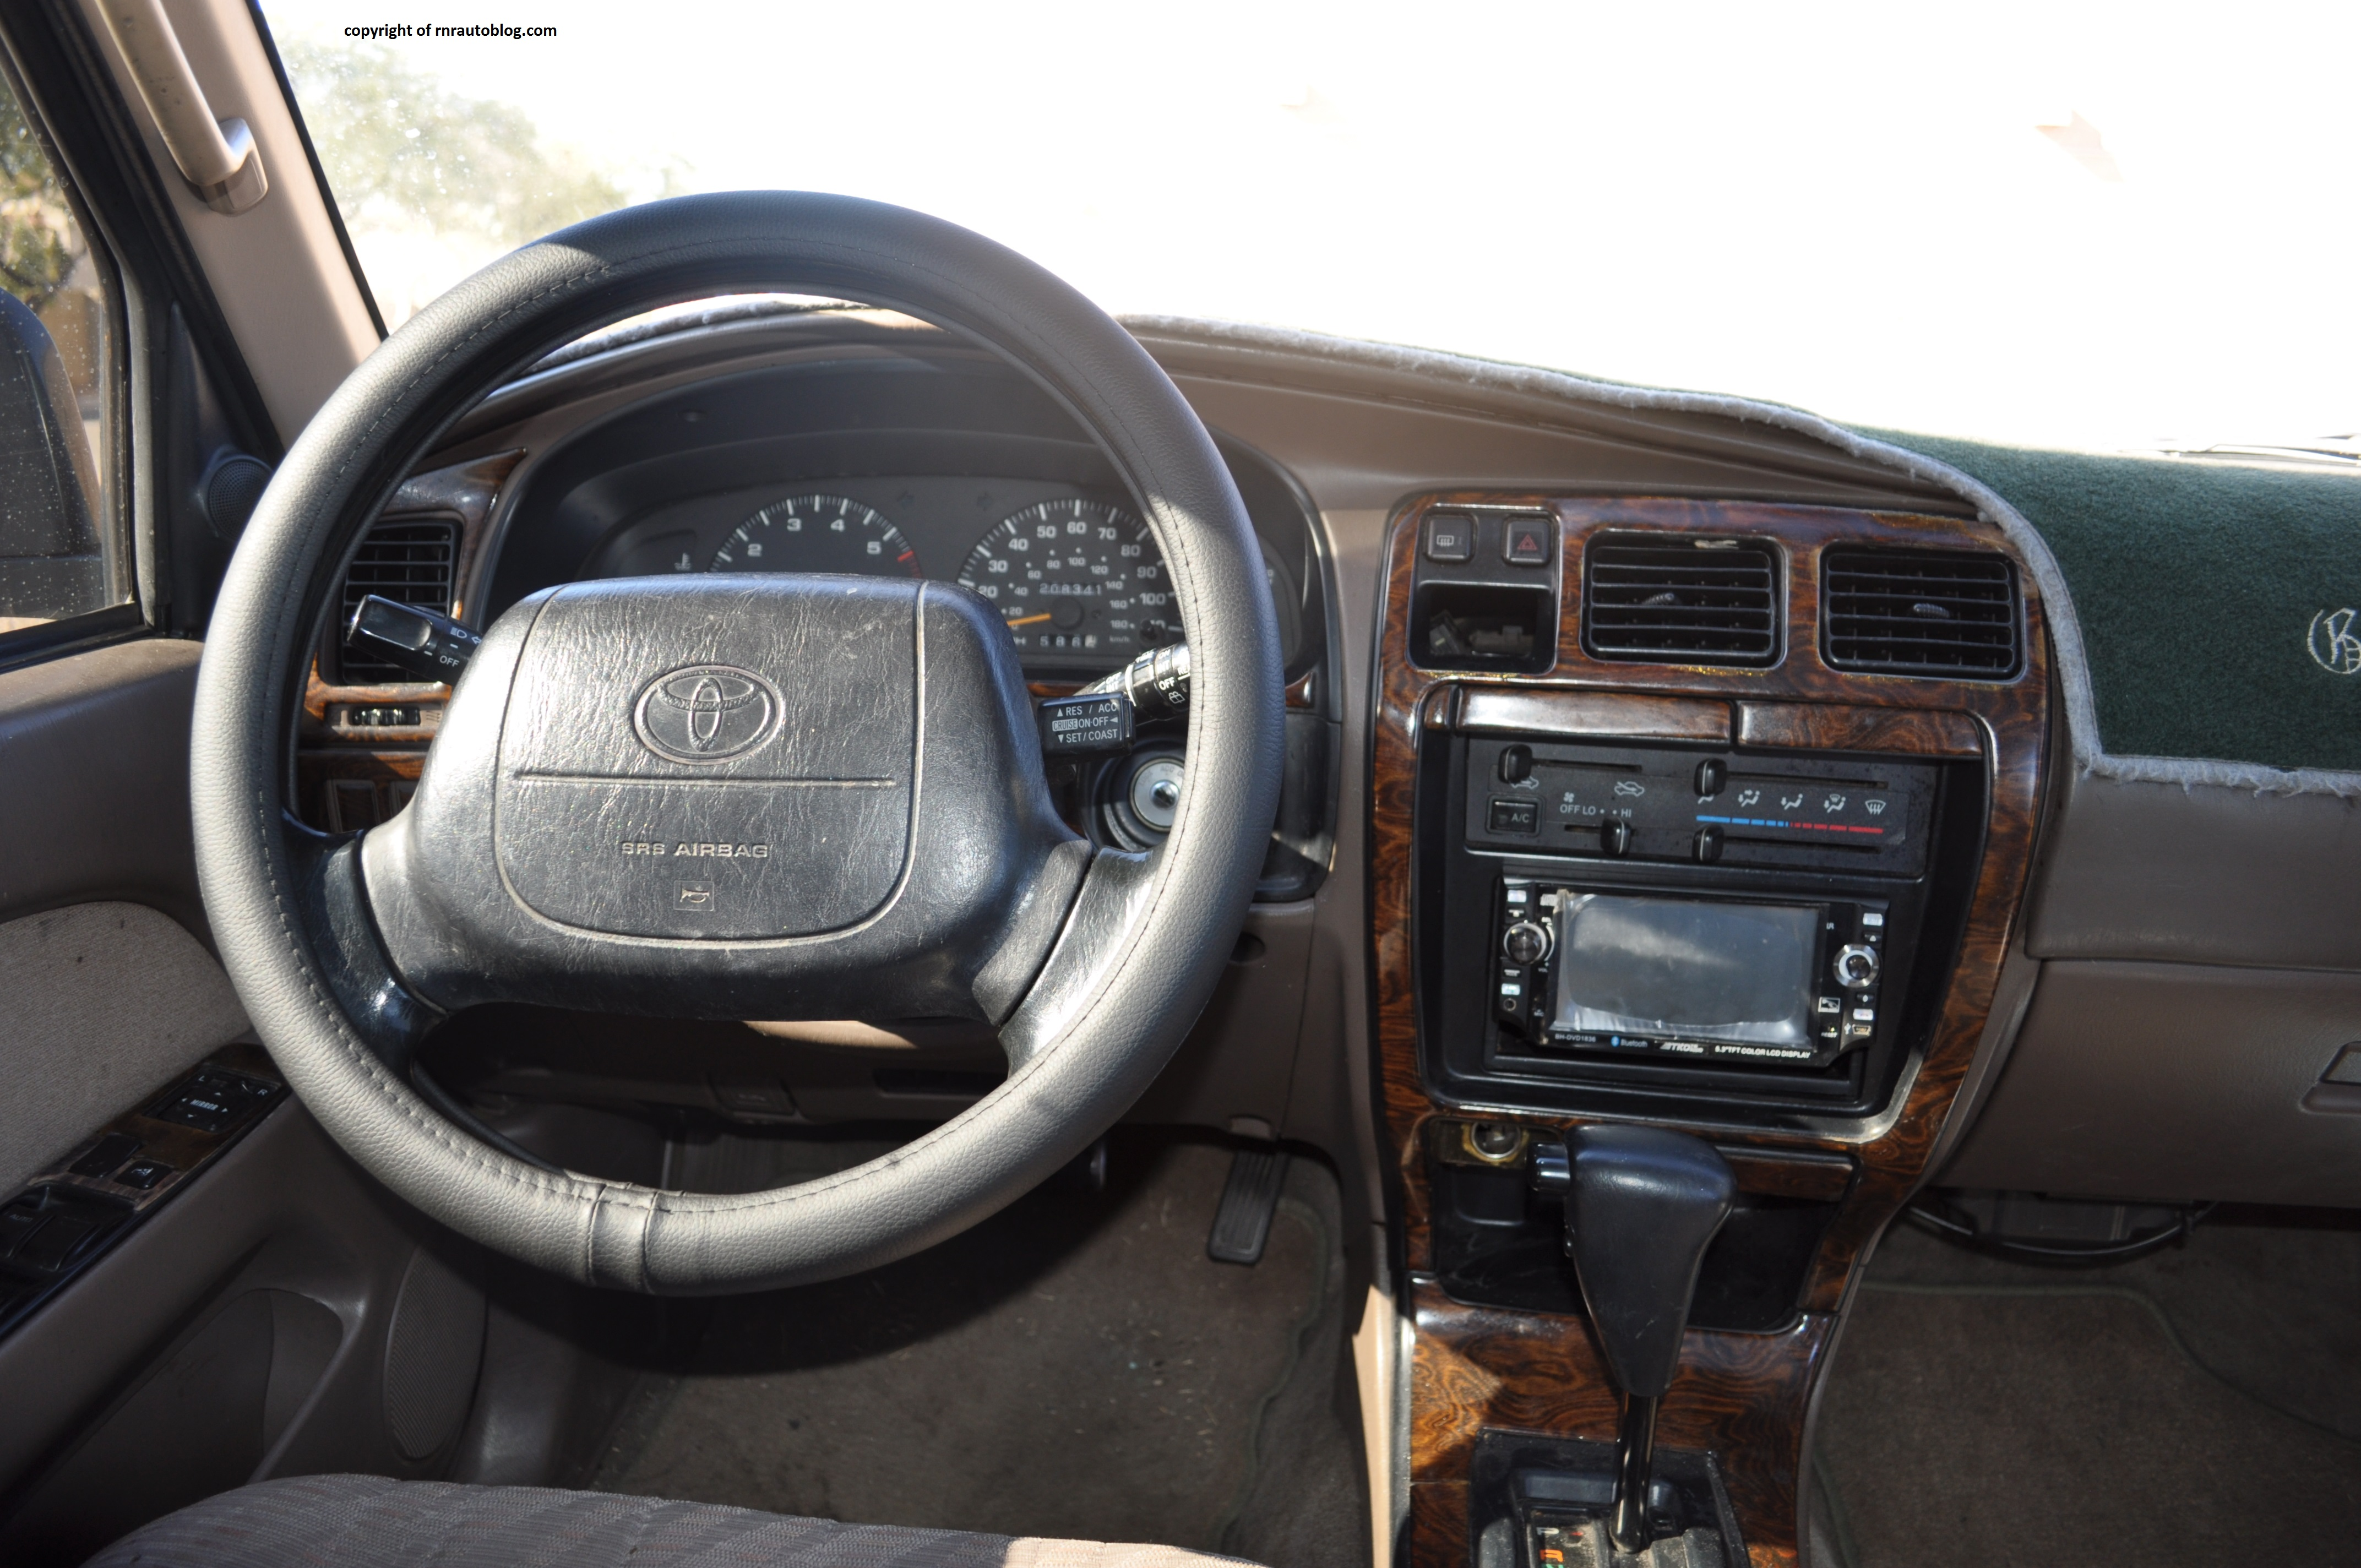 Driving The 4Runner Feels Like A Blast From The Past. The Steering Is A  Little Bit On The Heavy Side, But It Is Responsive Overall. It Lacks Road  Feel, ...